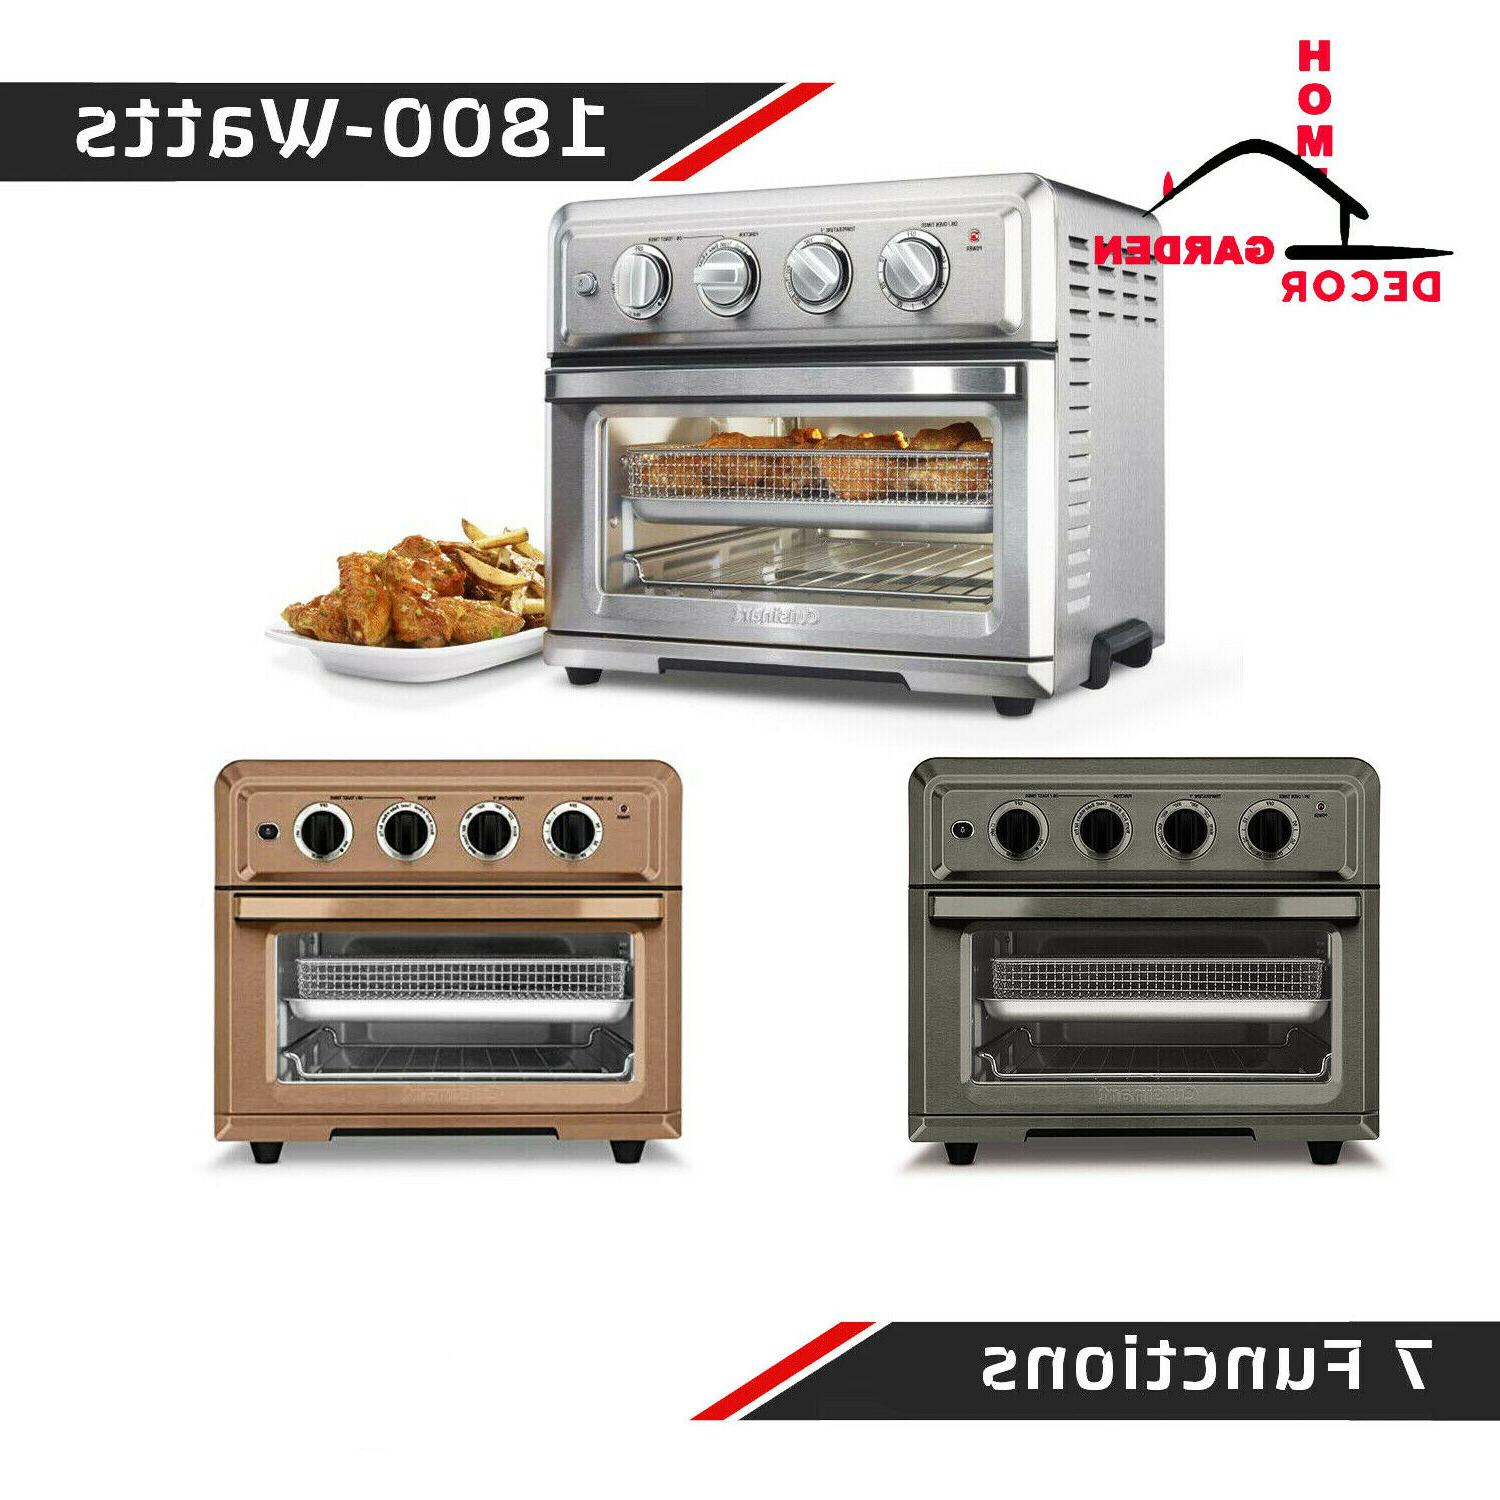 convection toaster oven air fry broil bake